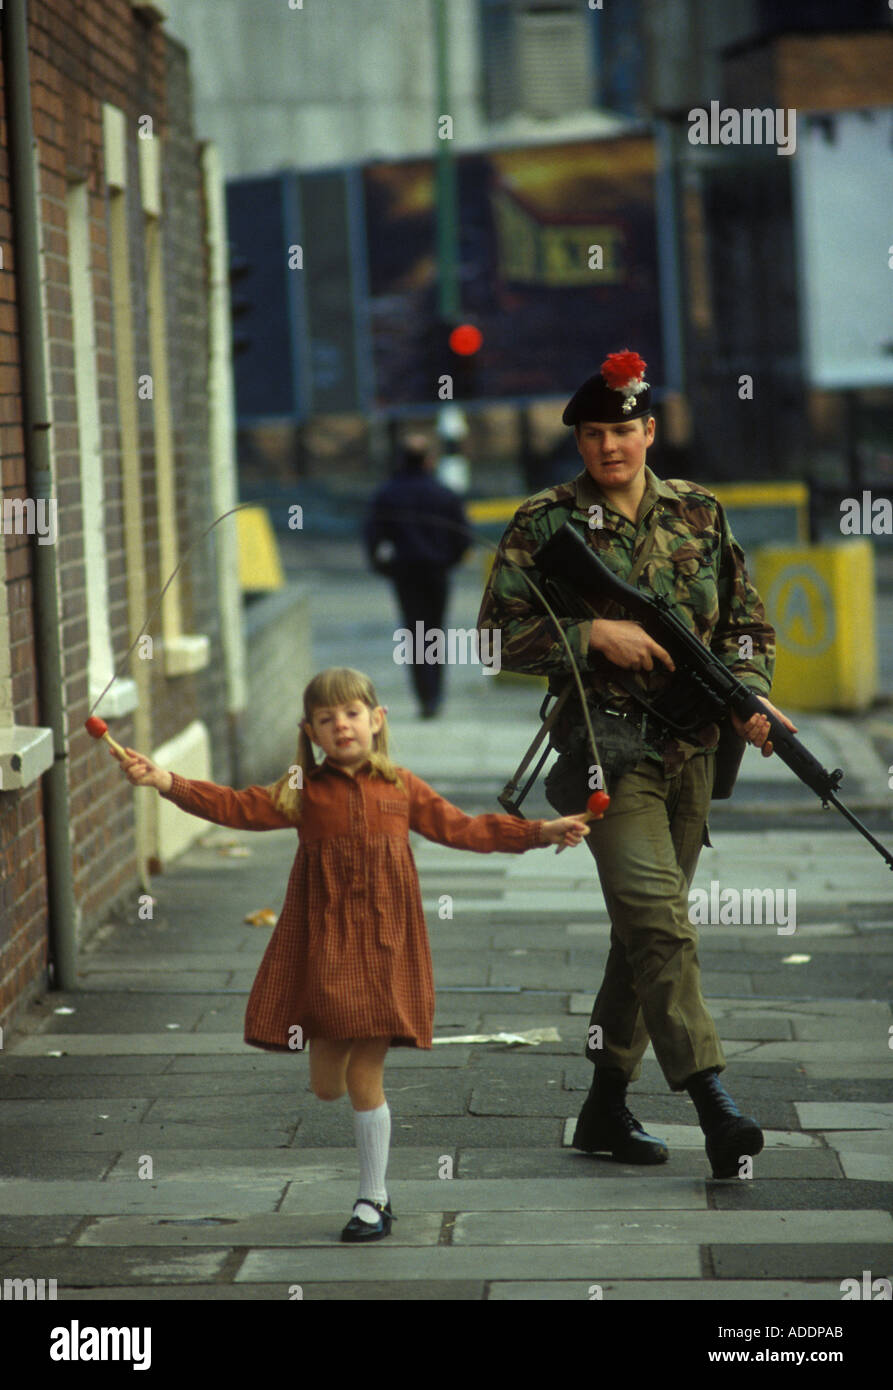 British soldier with gun out on parole  Belfast Northern Ireland 1981   HOMER SYKES - Stock Image